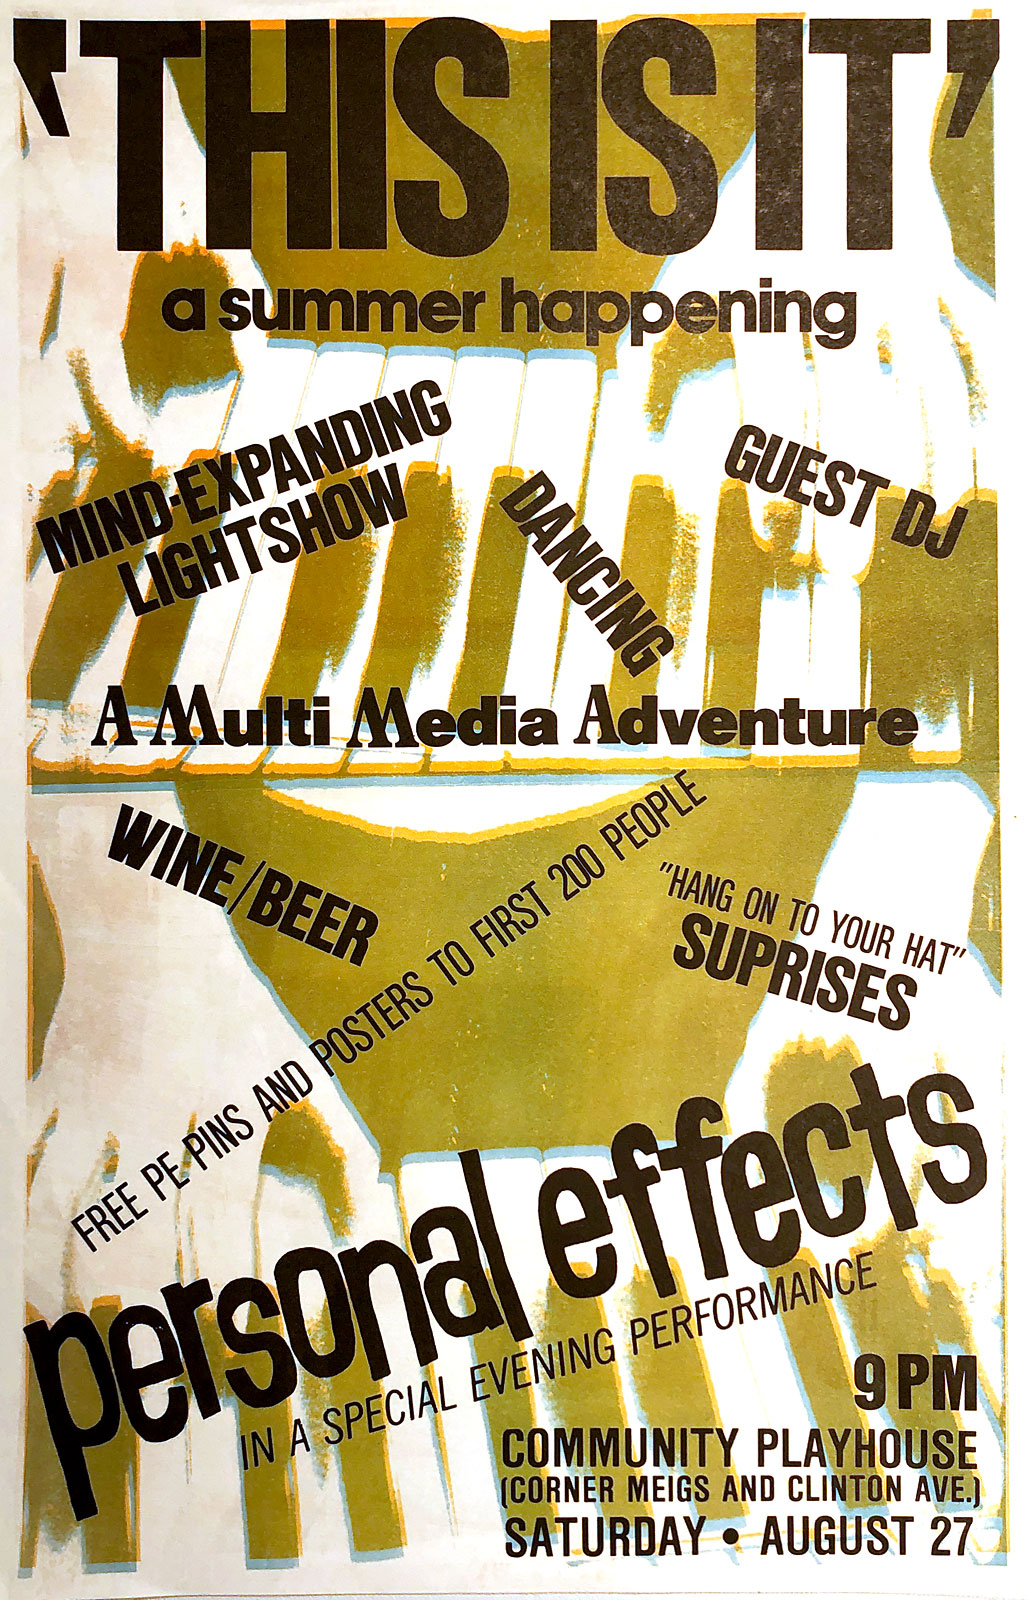 Poster for Personal Effects multi-media show at Community Playhouse, now Swillburgers, in Rochester, New York 08.27.1983